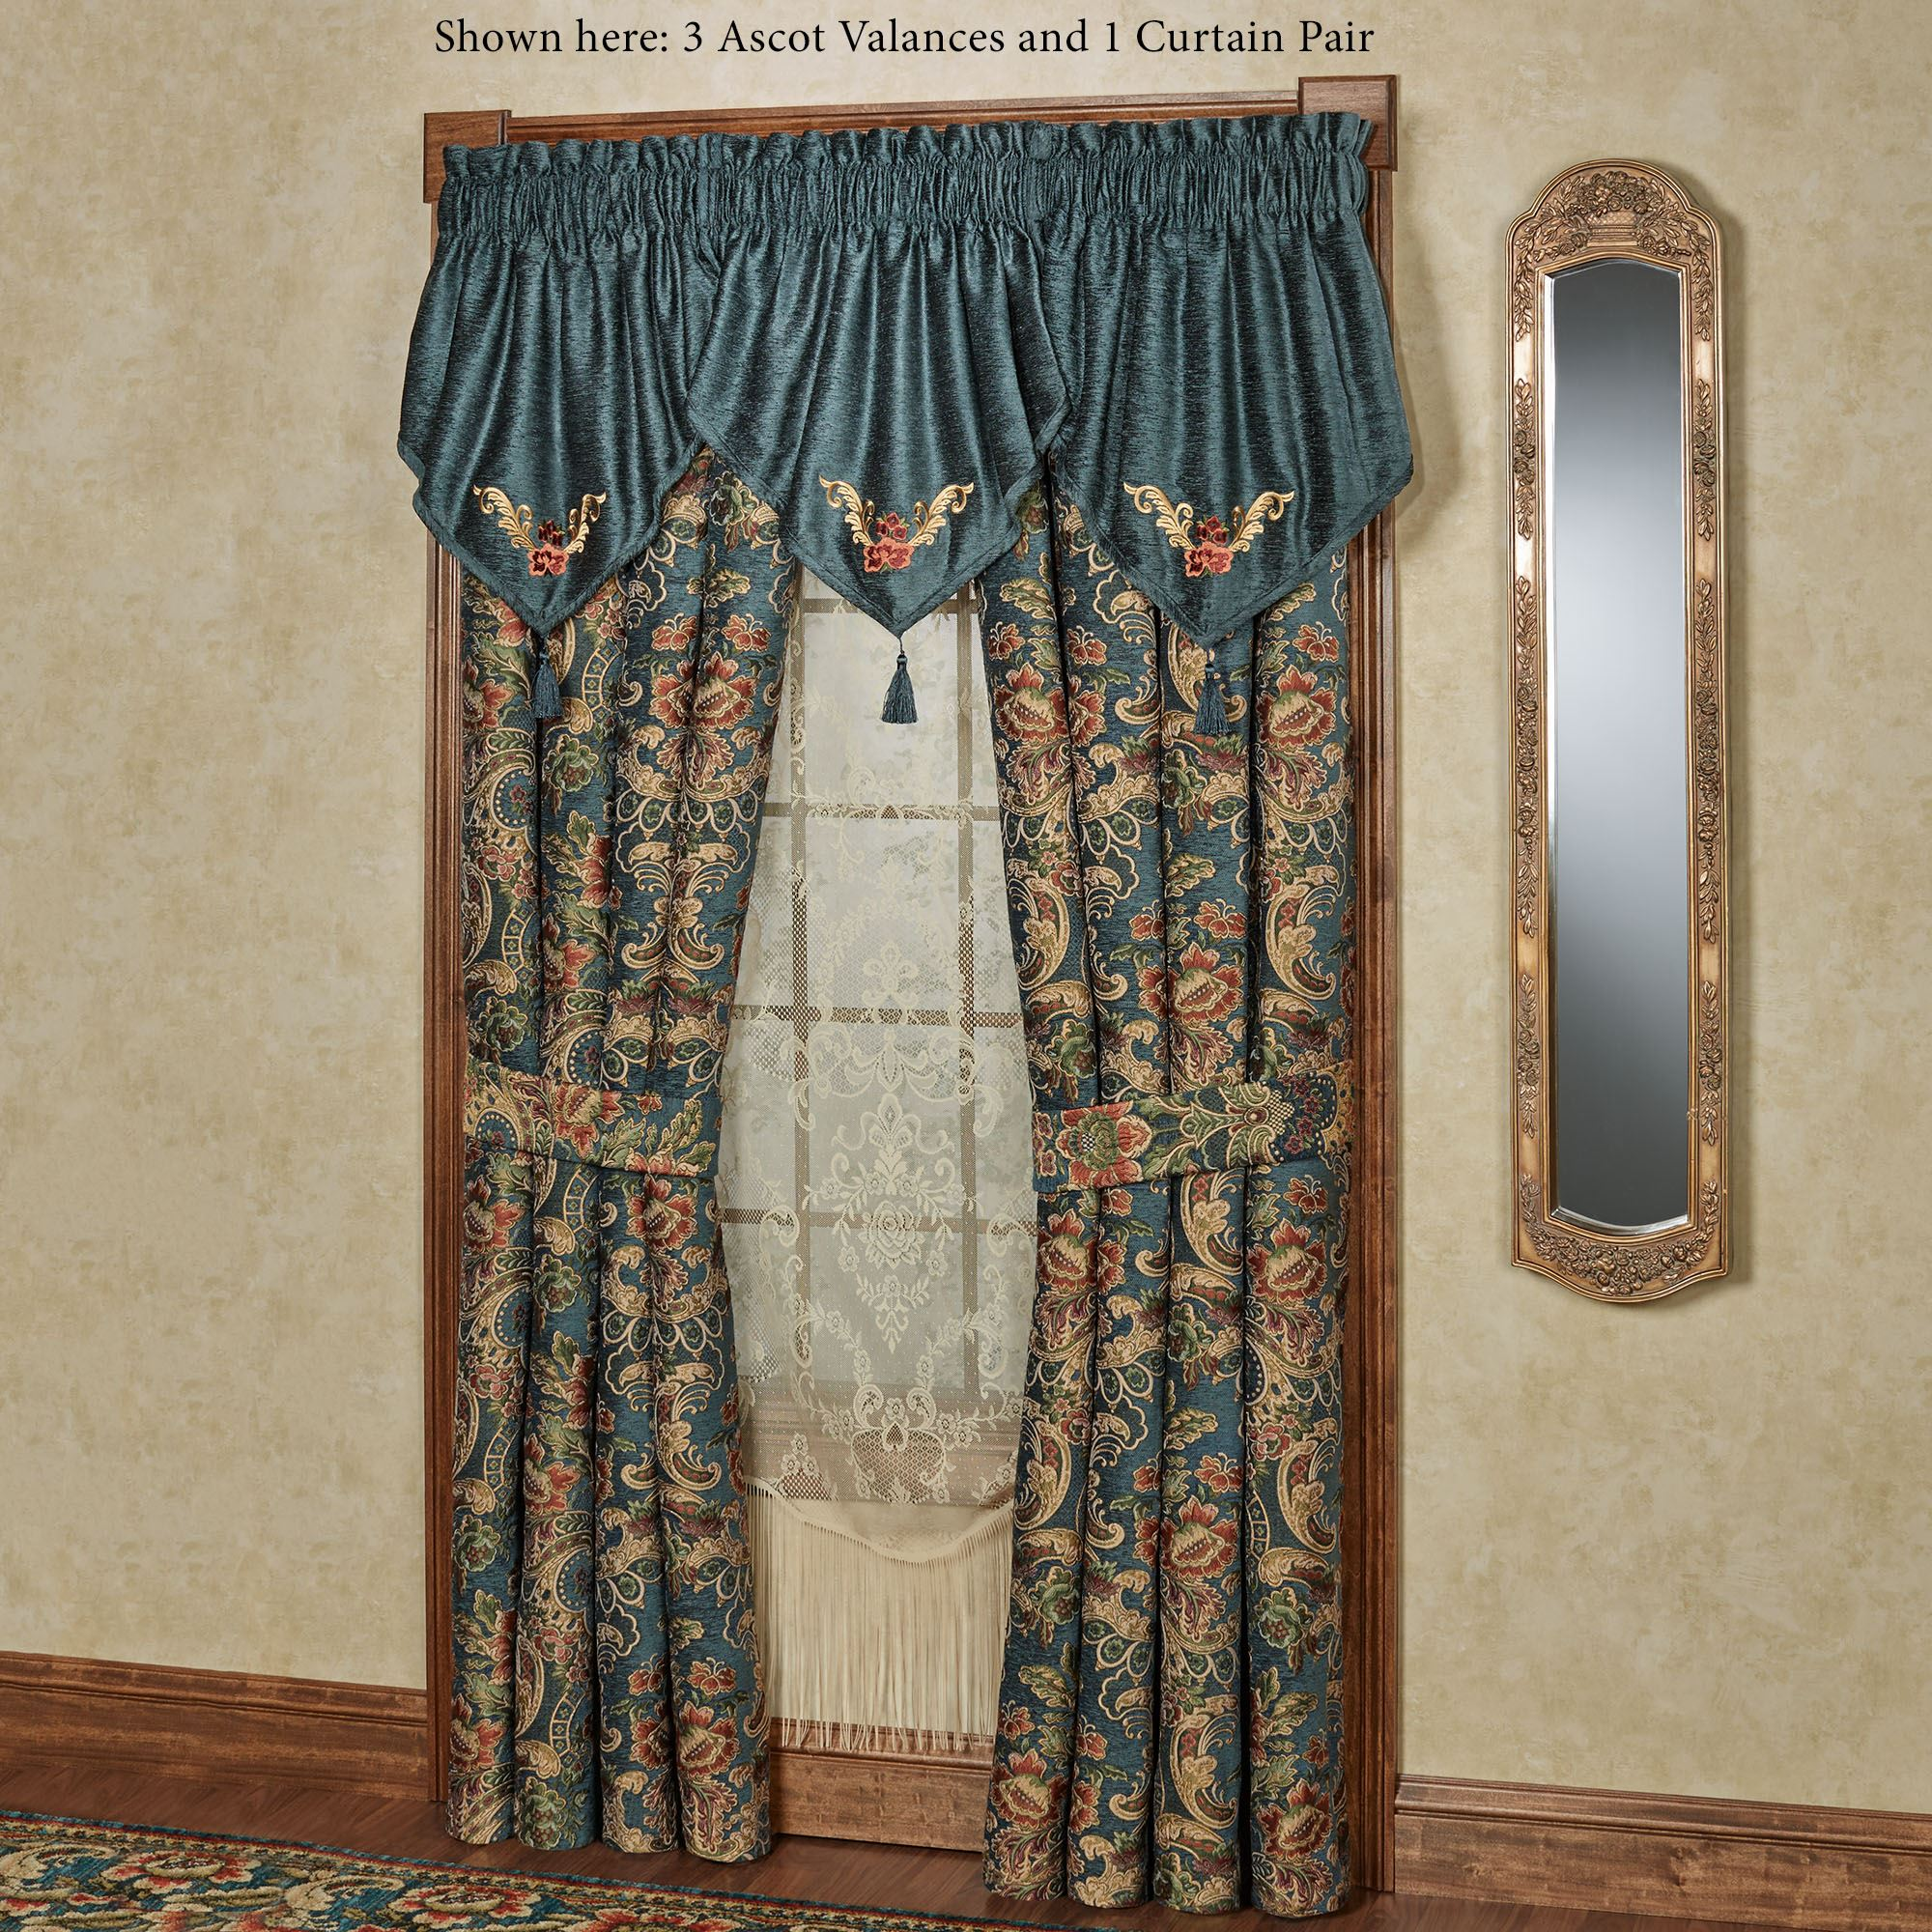 Casanova Dark Teal Ascot Valance Window Treatment